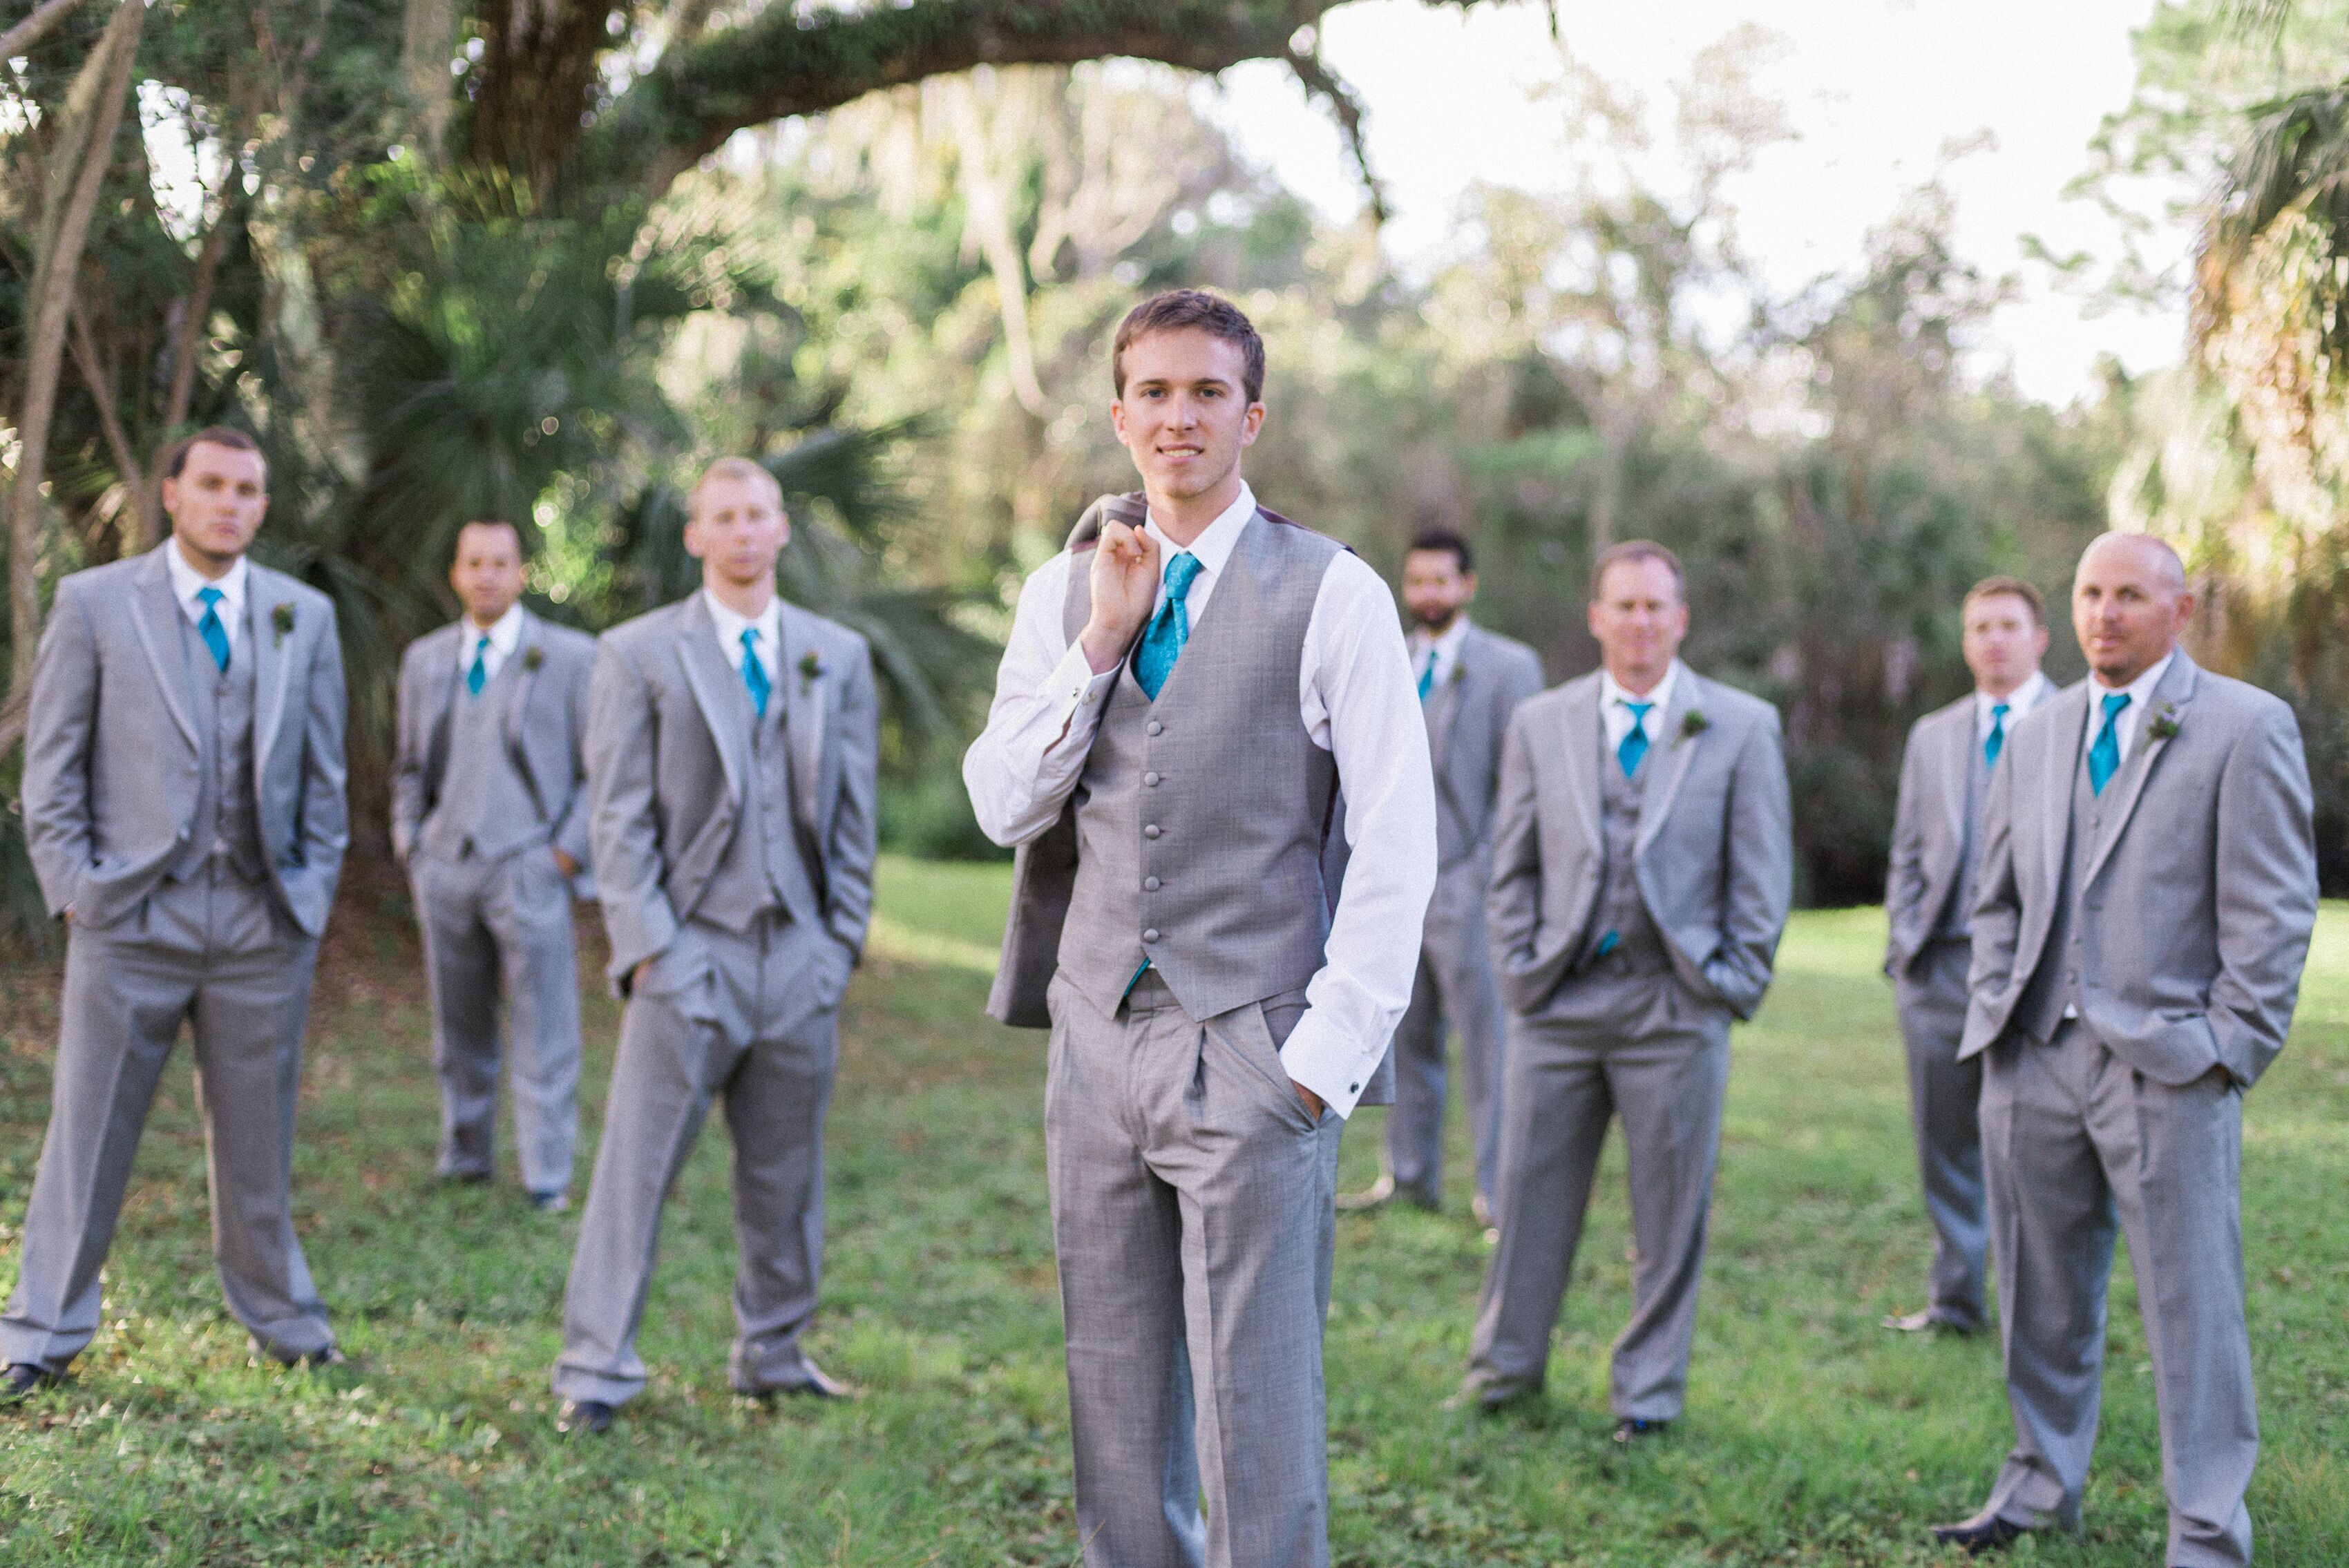 Gray Groomsmen Suits With Bright Turquoise Ties